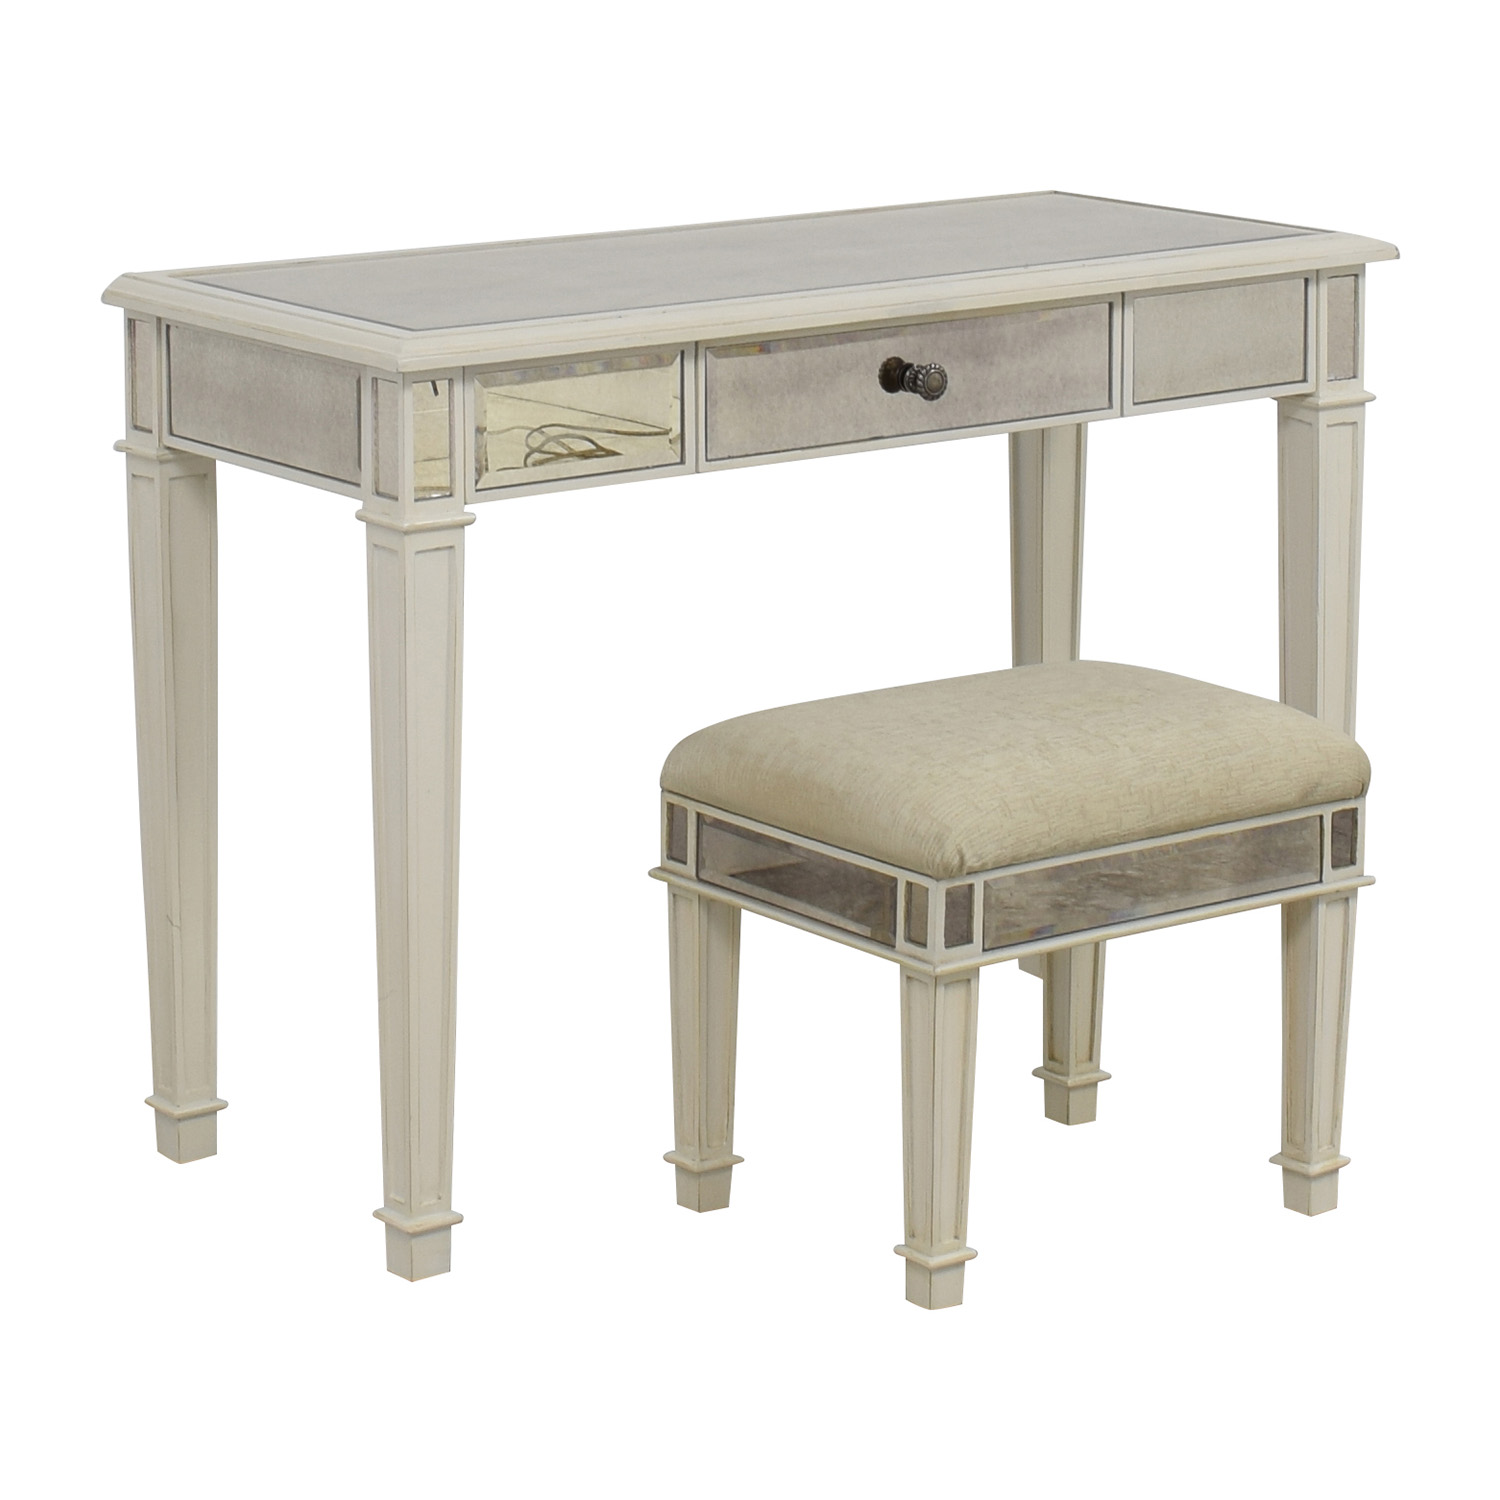 Mirror Vanity Table Pier 1 Imports Designer Tables Reference